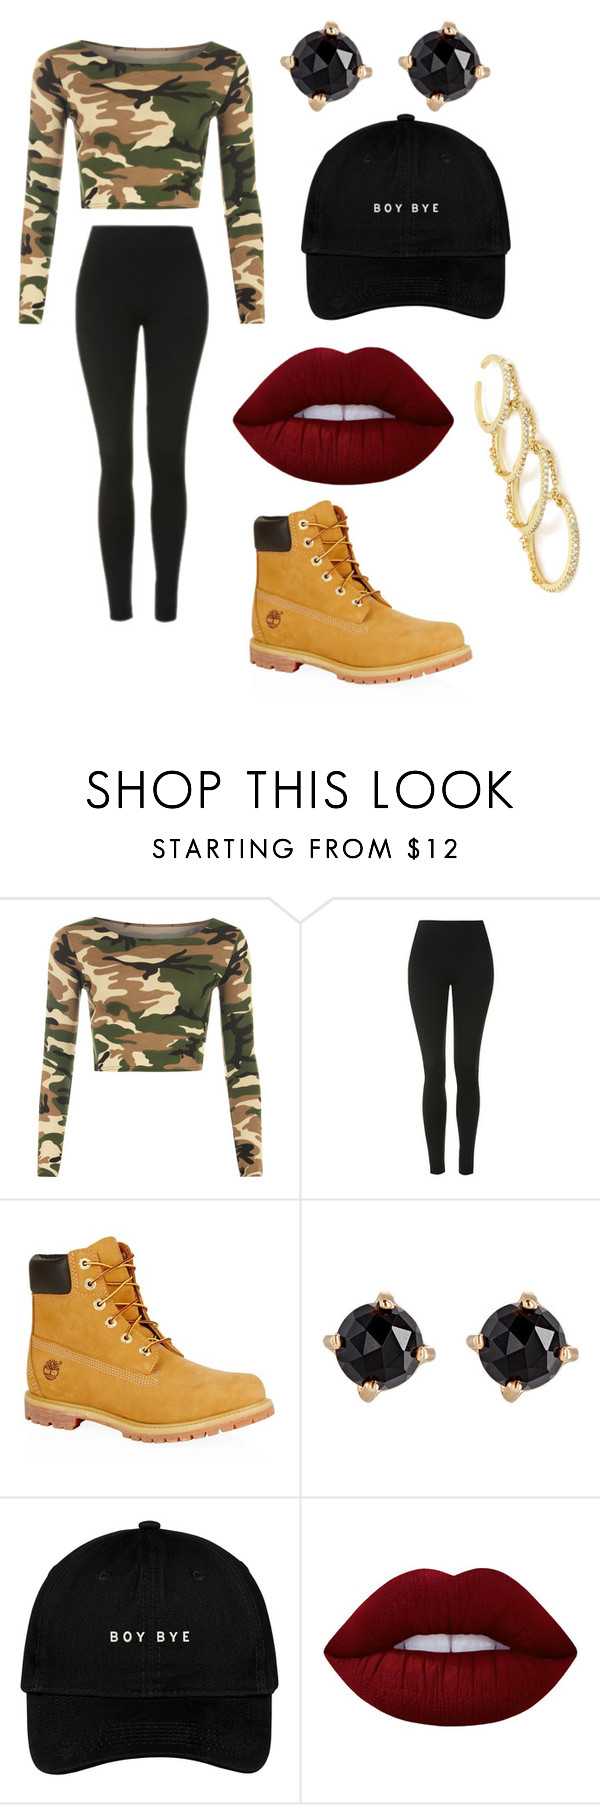 """Untitled #200"" by chaniyanesbitt ❤ liked on Polyvore featuring WearAll, Topshop, Timberland, Irene Neuwirth, Lime Crime and Fallon"